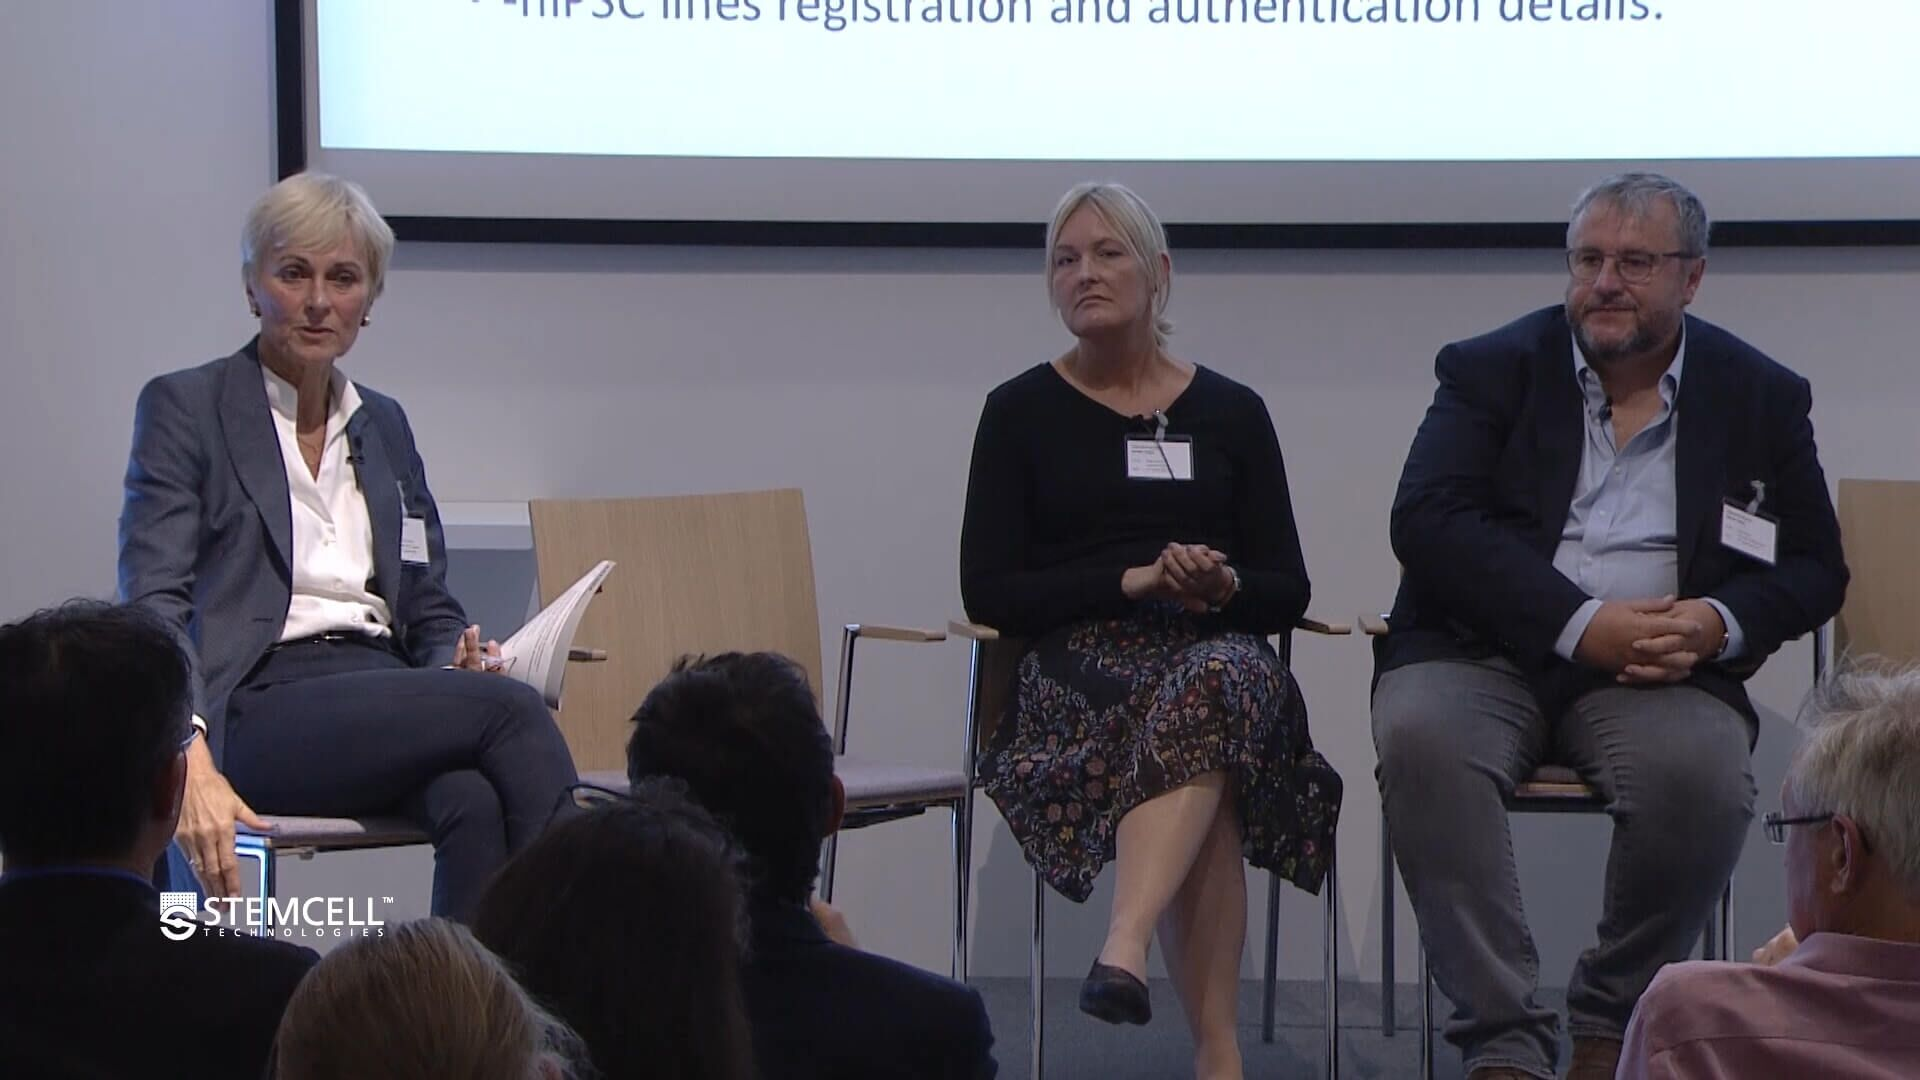 Nature Research Round Table: hPSC Lines for Cell Therapies - Panel Discussion